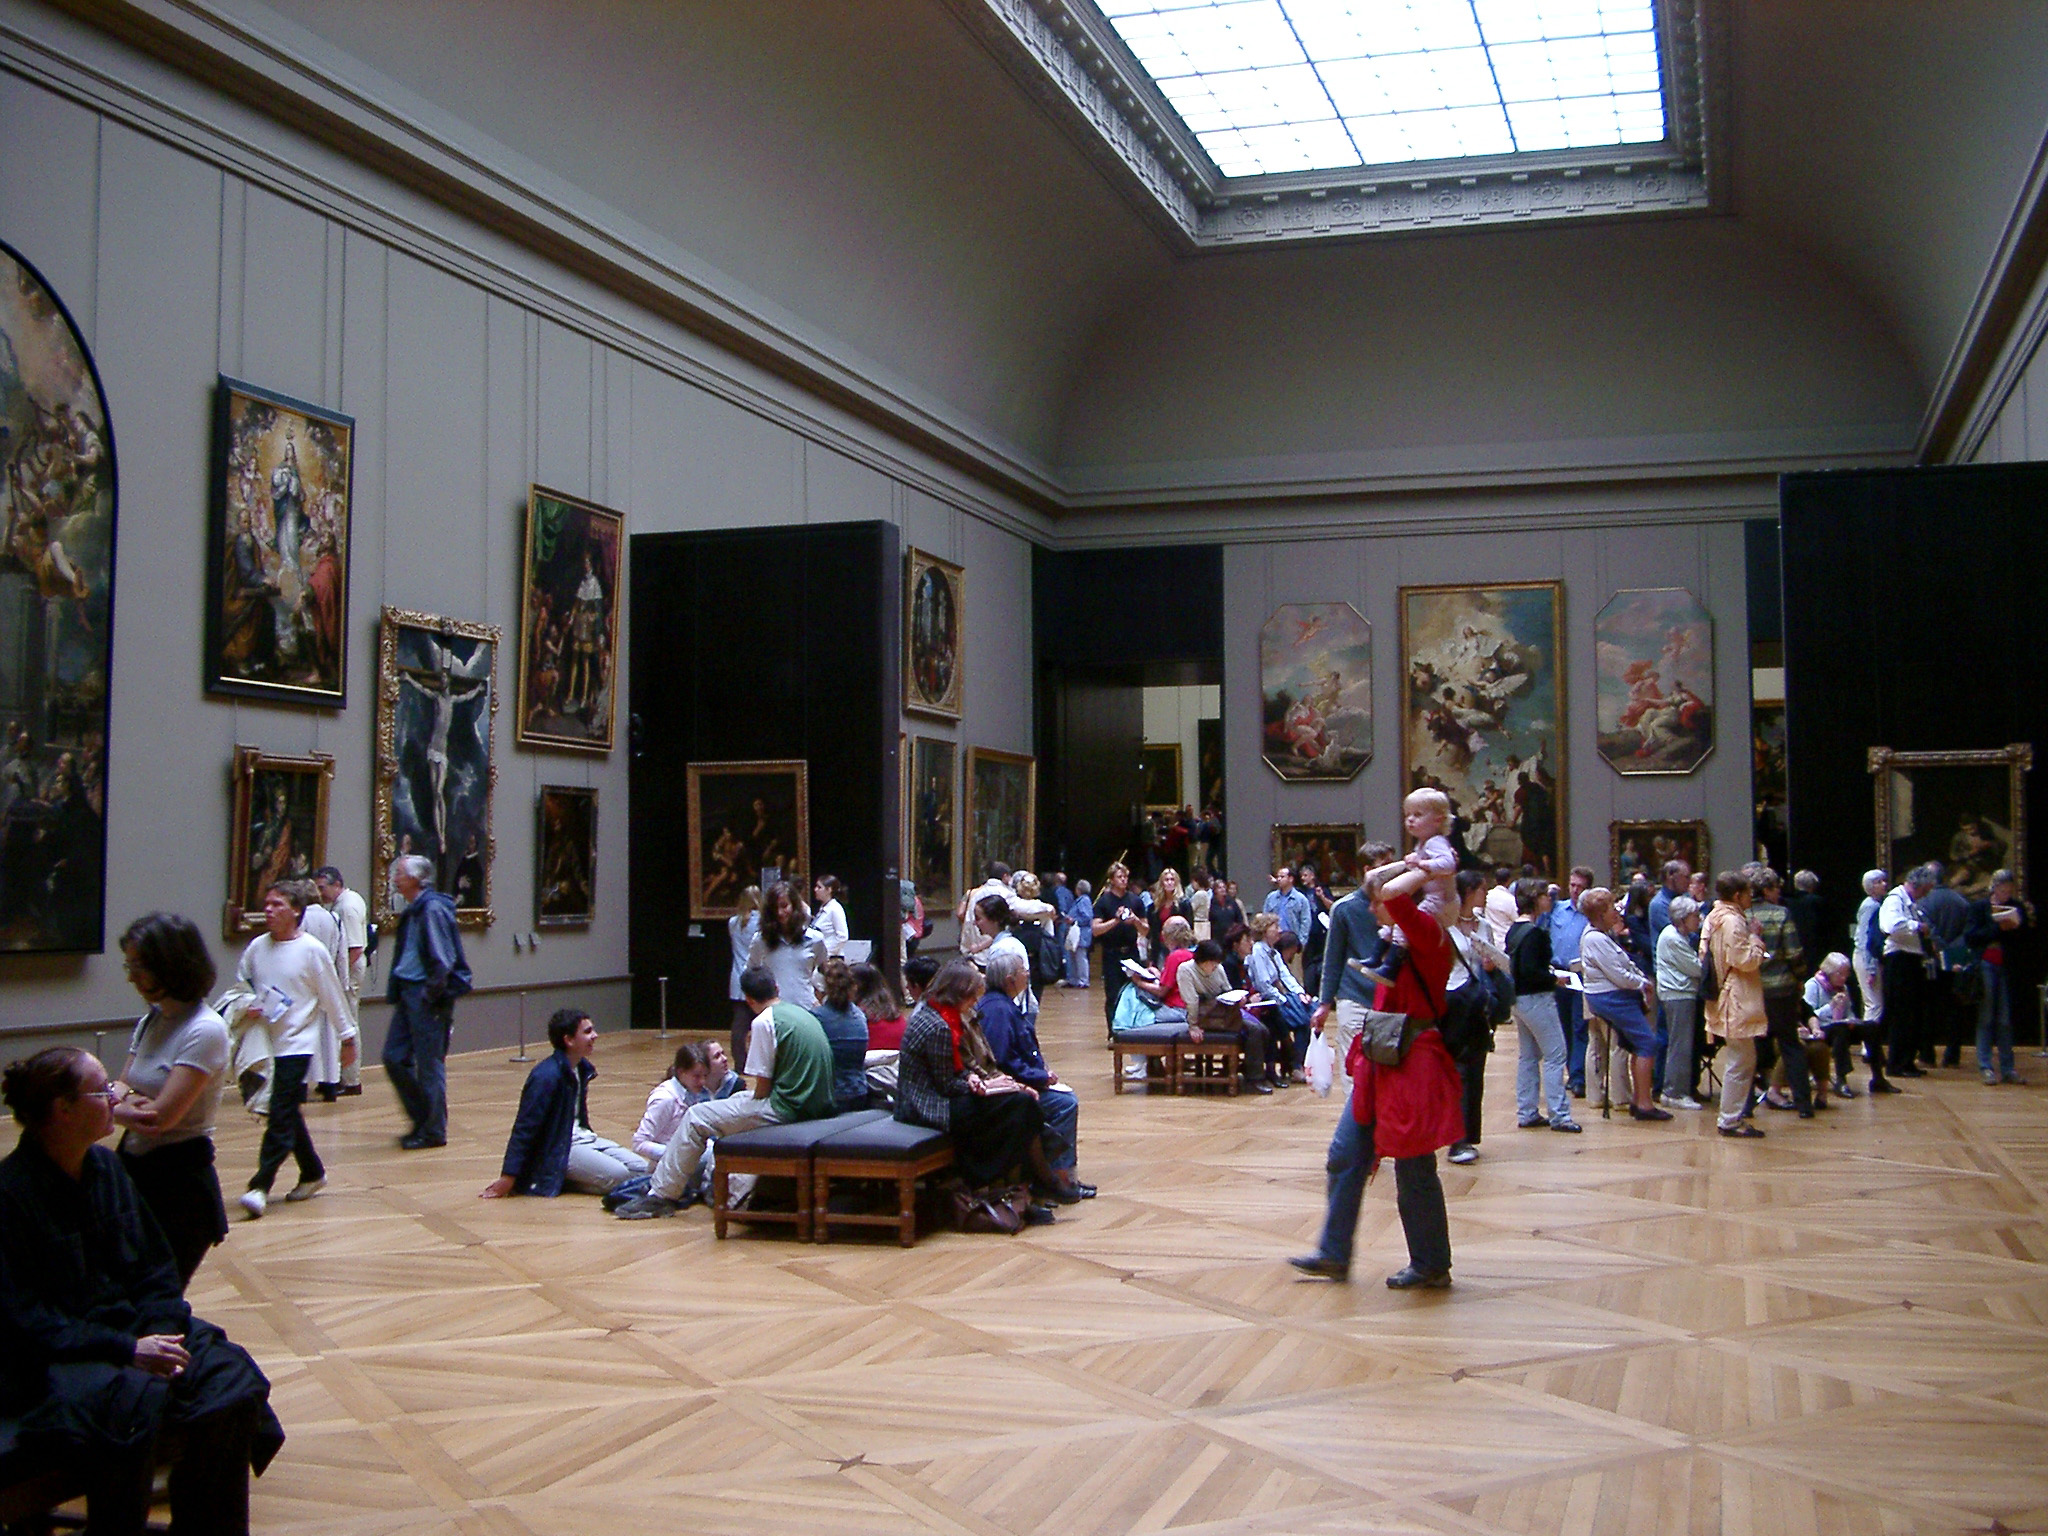 Crowds of visitors and tourists inside the Louvre Museum, Paris